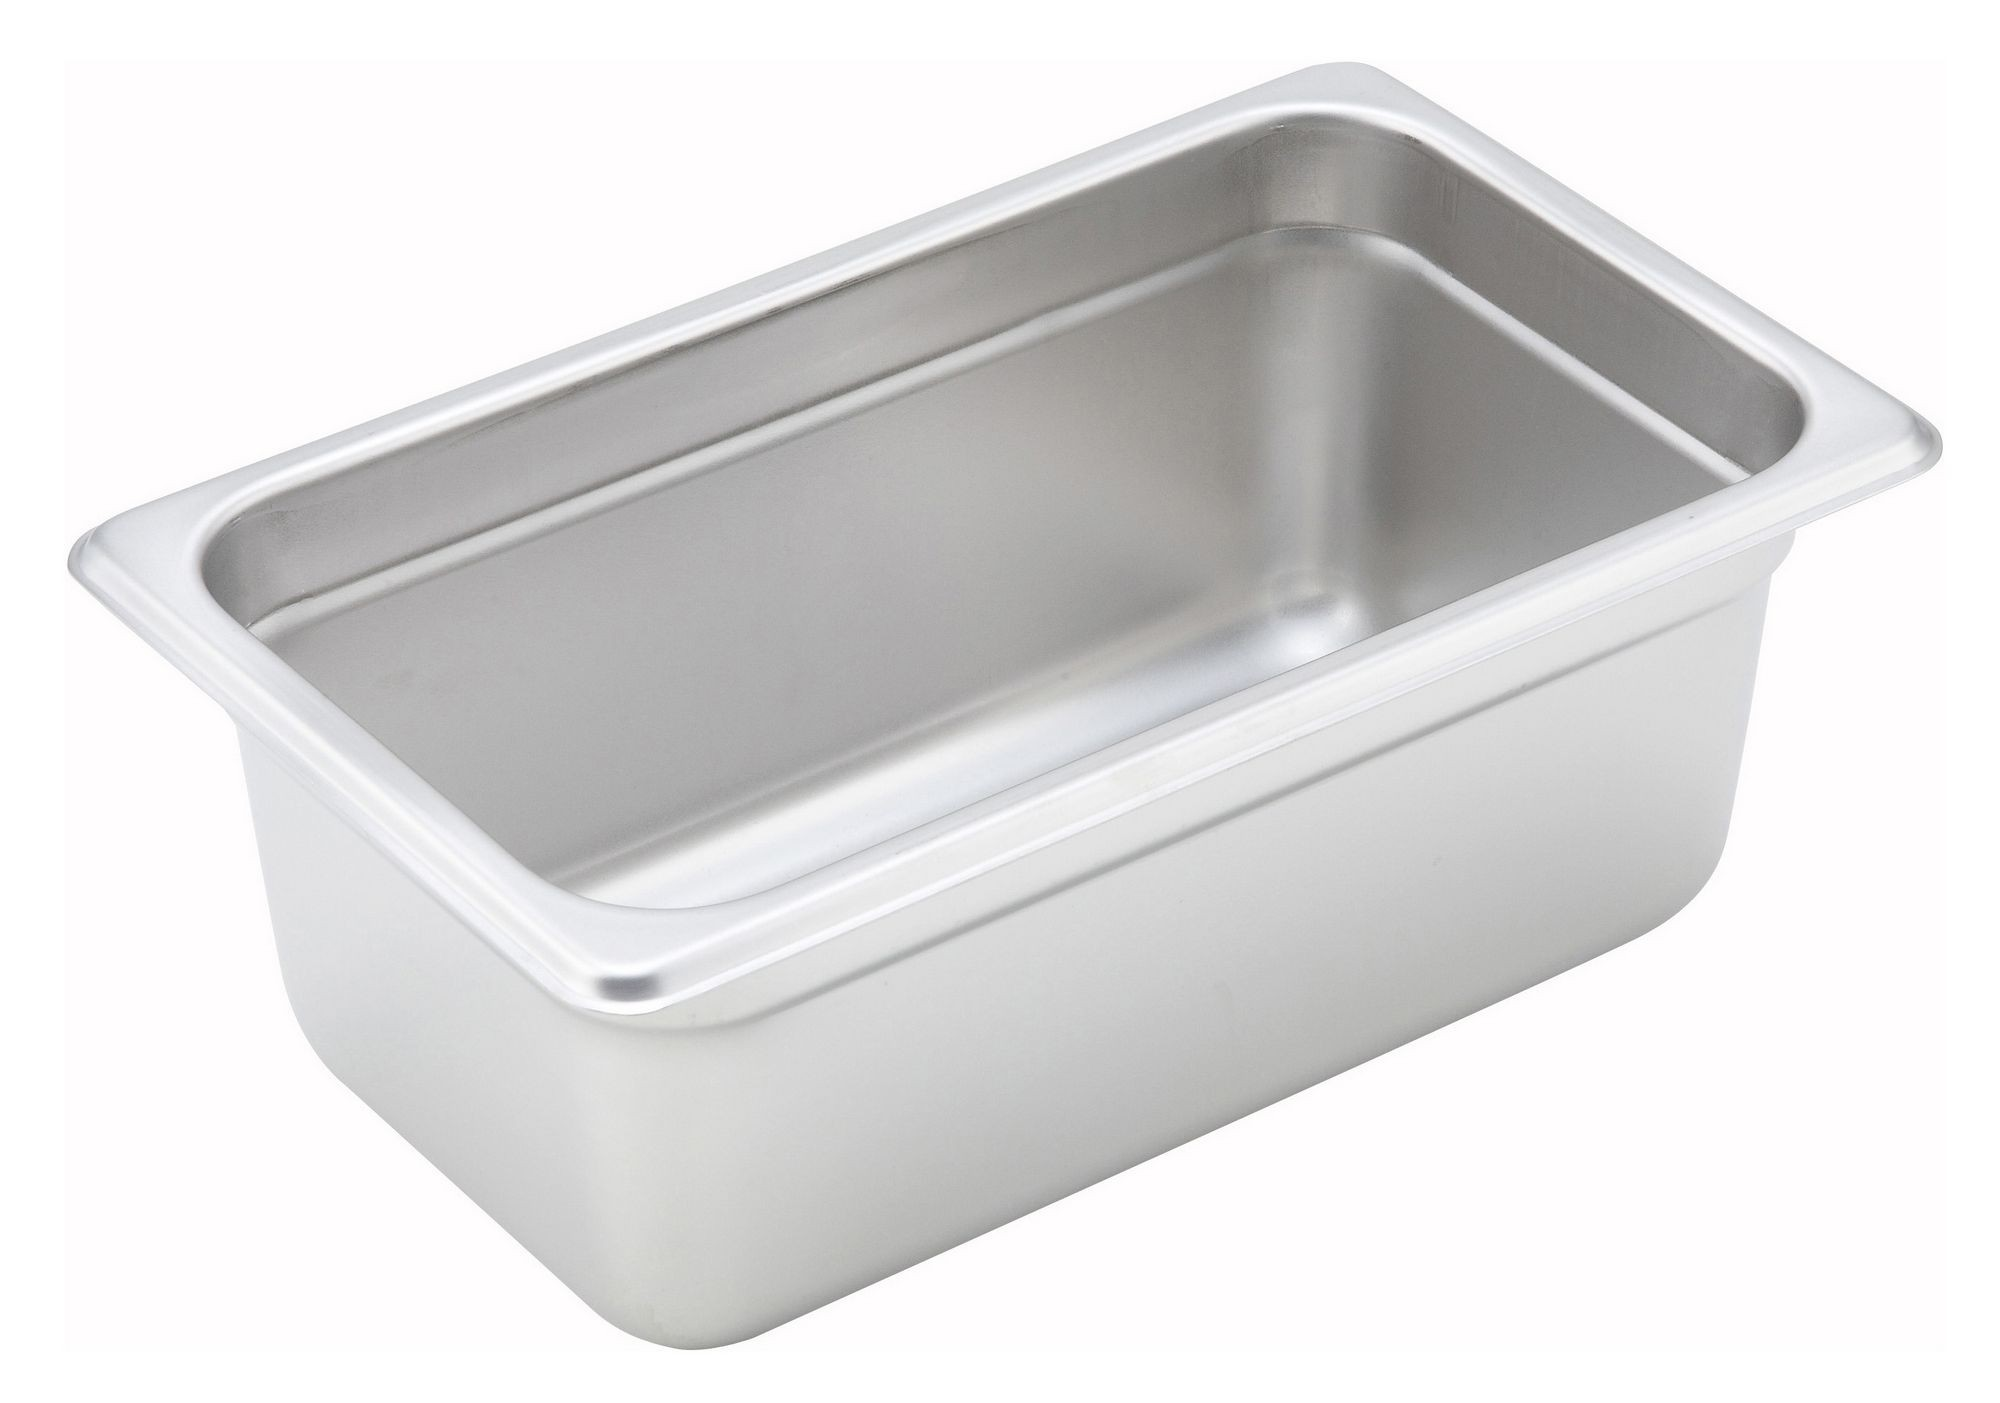 "Winco SPJH-404 1/4 Size Anti-Jam 22 Gauge Steam Table Pan 4"" Deep"